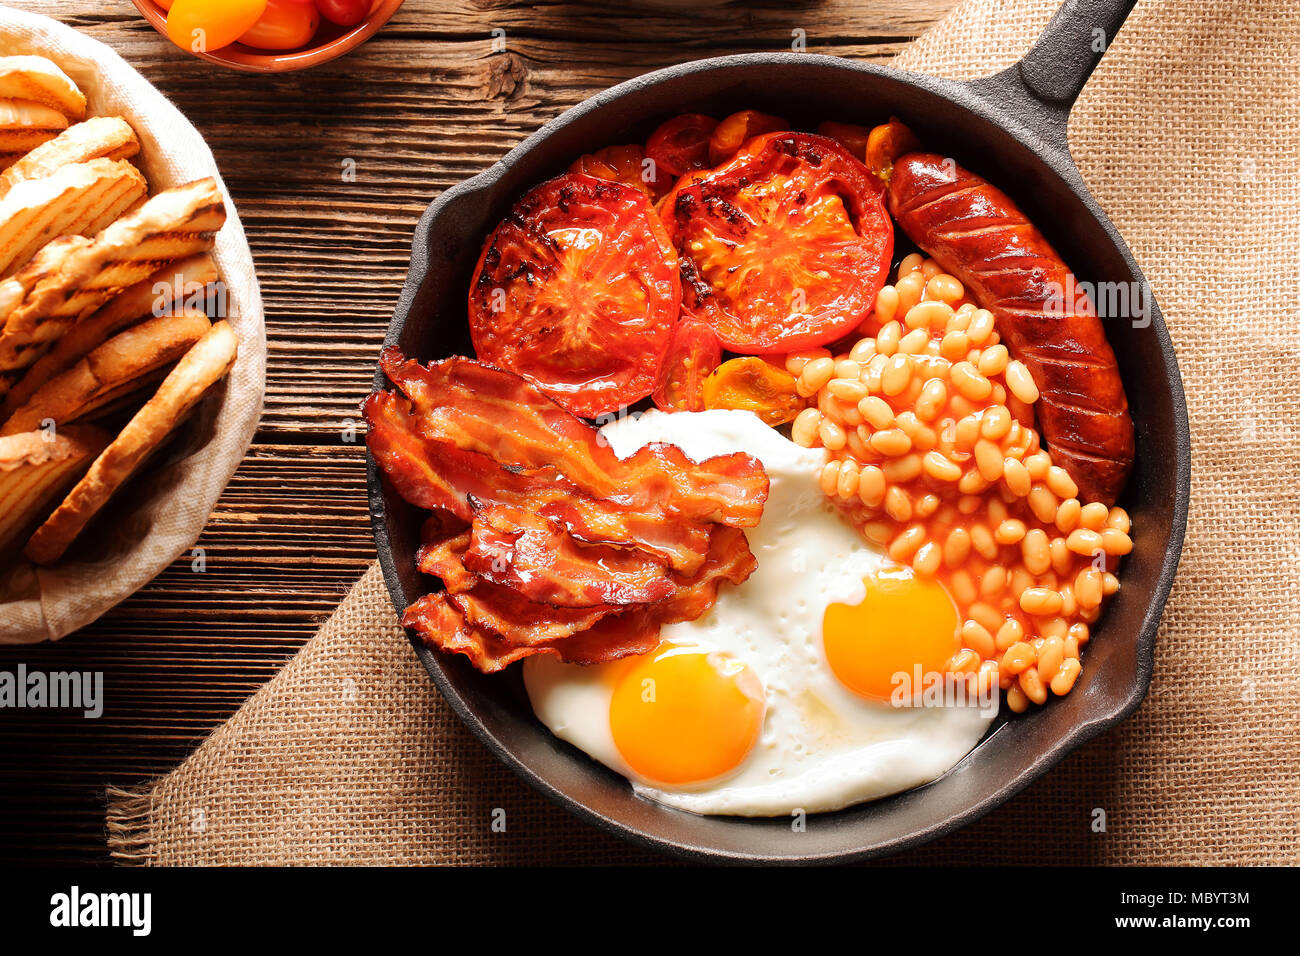 English Breakfast with sausages, grilled tomatoes, egg, bacon, beans and bread on frying pan. - Stock Image